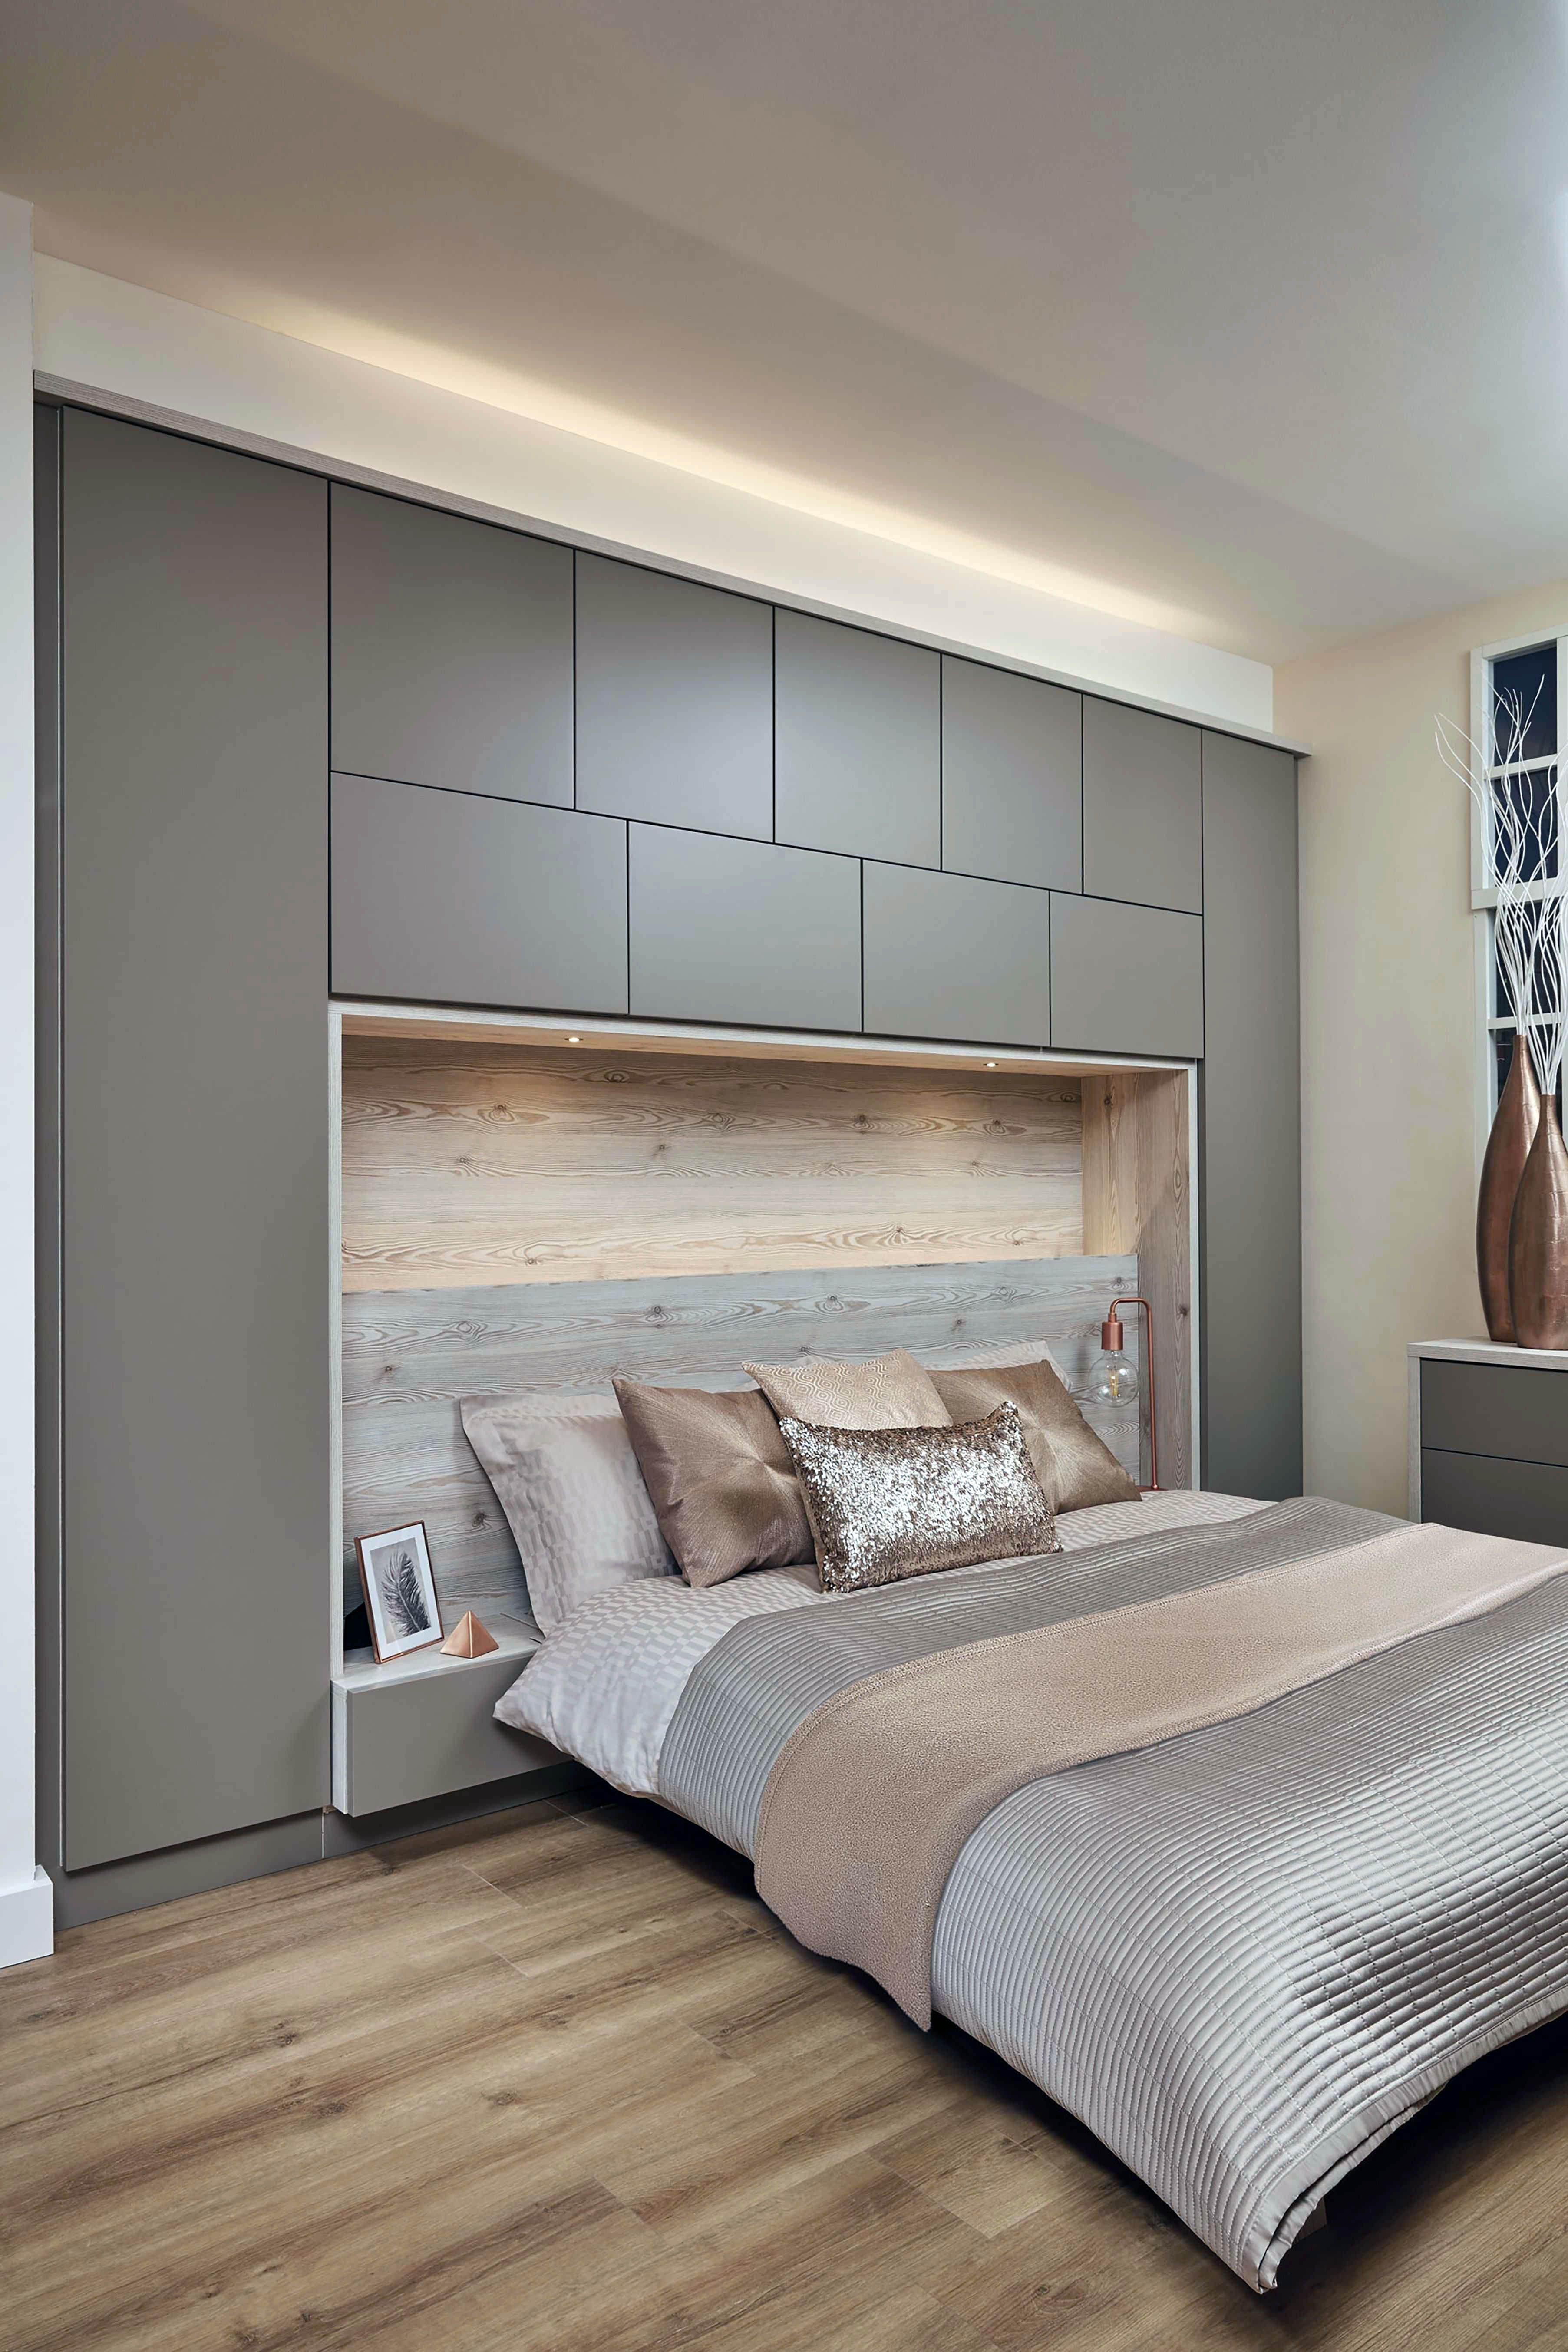 New Childrens Bedroom Ceiling Ideas That Will Blow Your Mind Modern Master Bedroom Design Small Master Bedroom Simple Bedroom